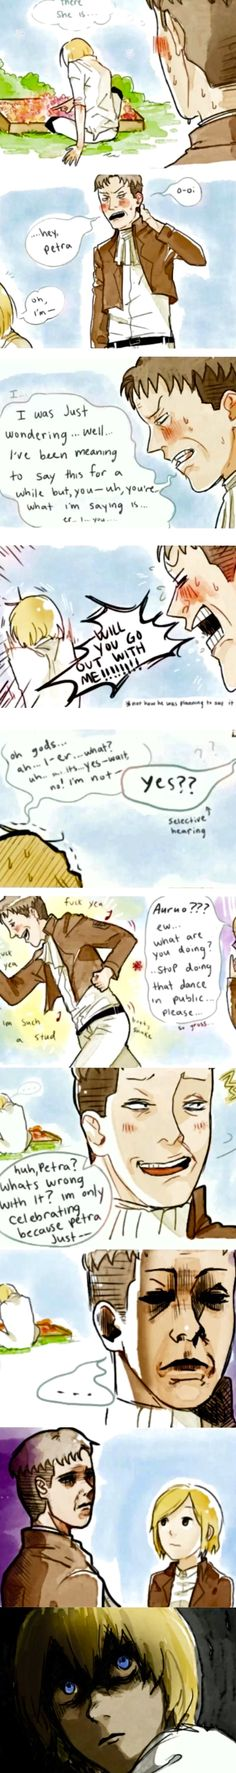 Auruo confesses his love and asks out Petra to Armin << XD IM LAUGHING SO HARD RN